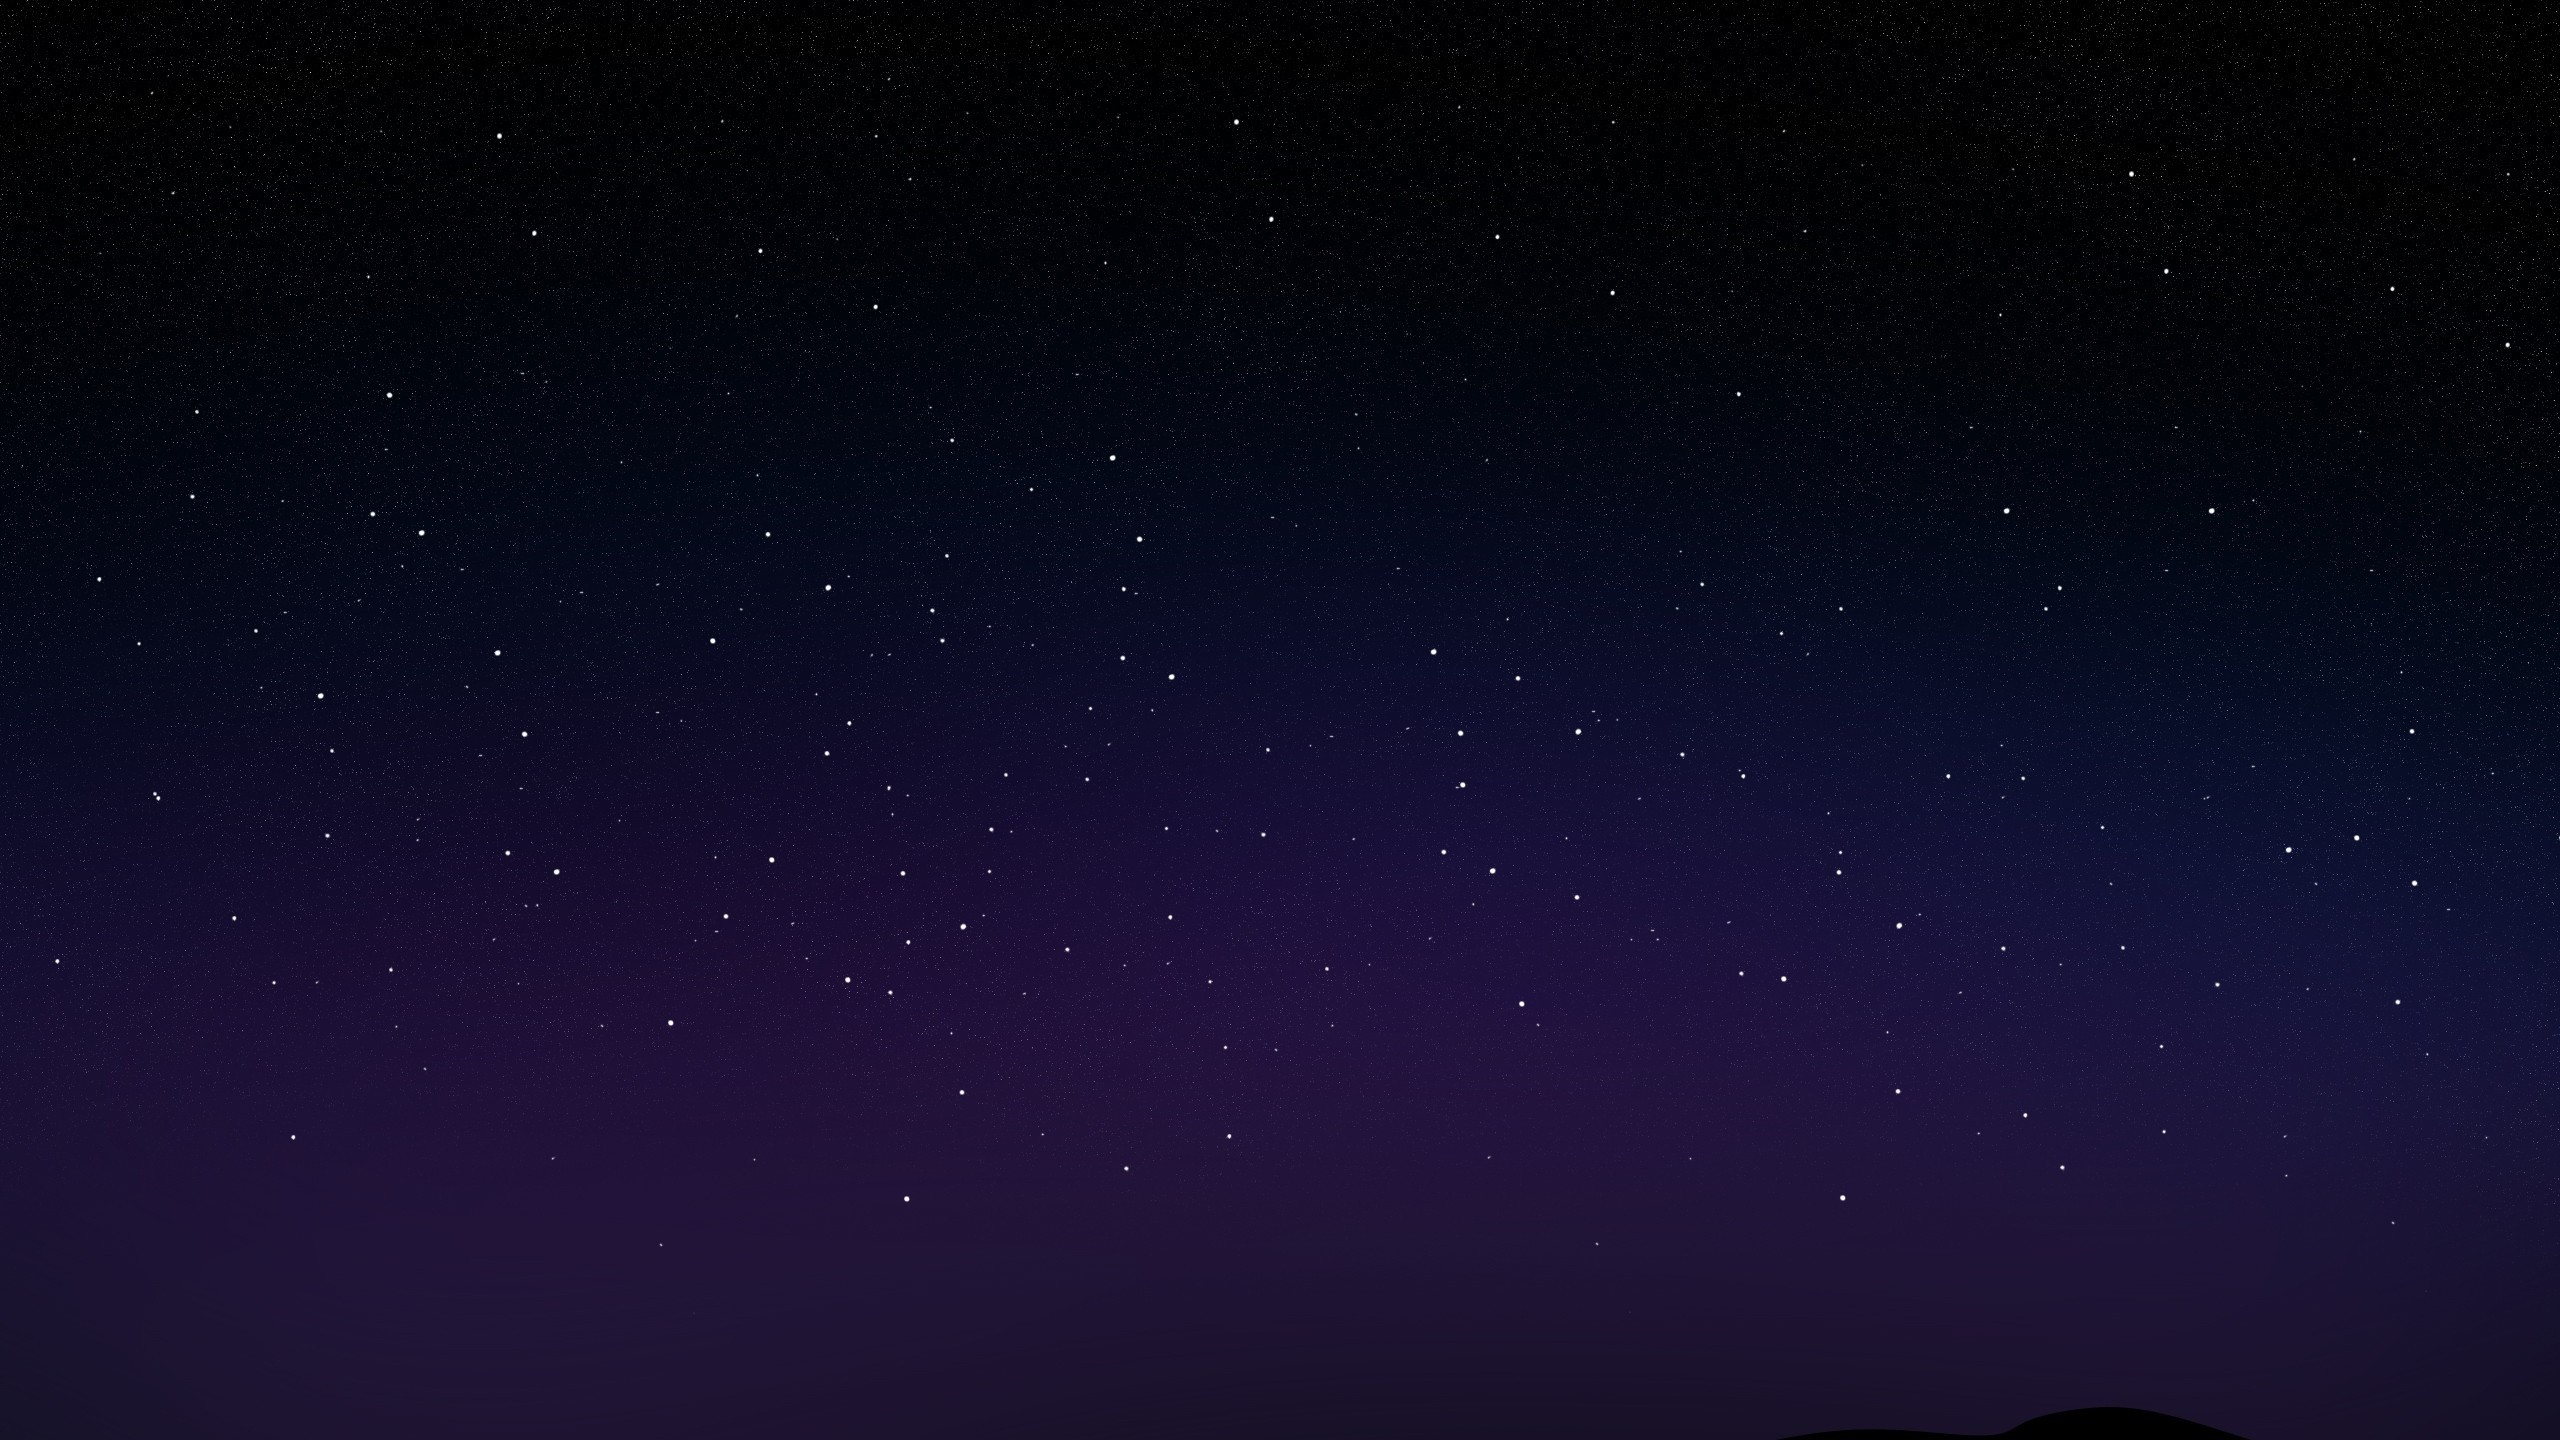 Starry Night Sky. How to set wallpaper on your desktop? Click the  download link from above and set the wallpaper on the desktop from your OS.